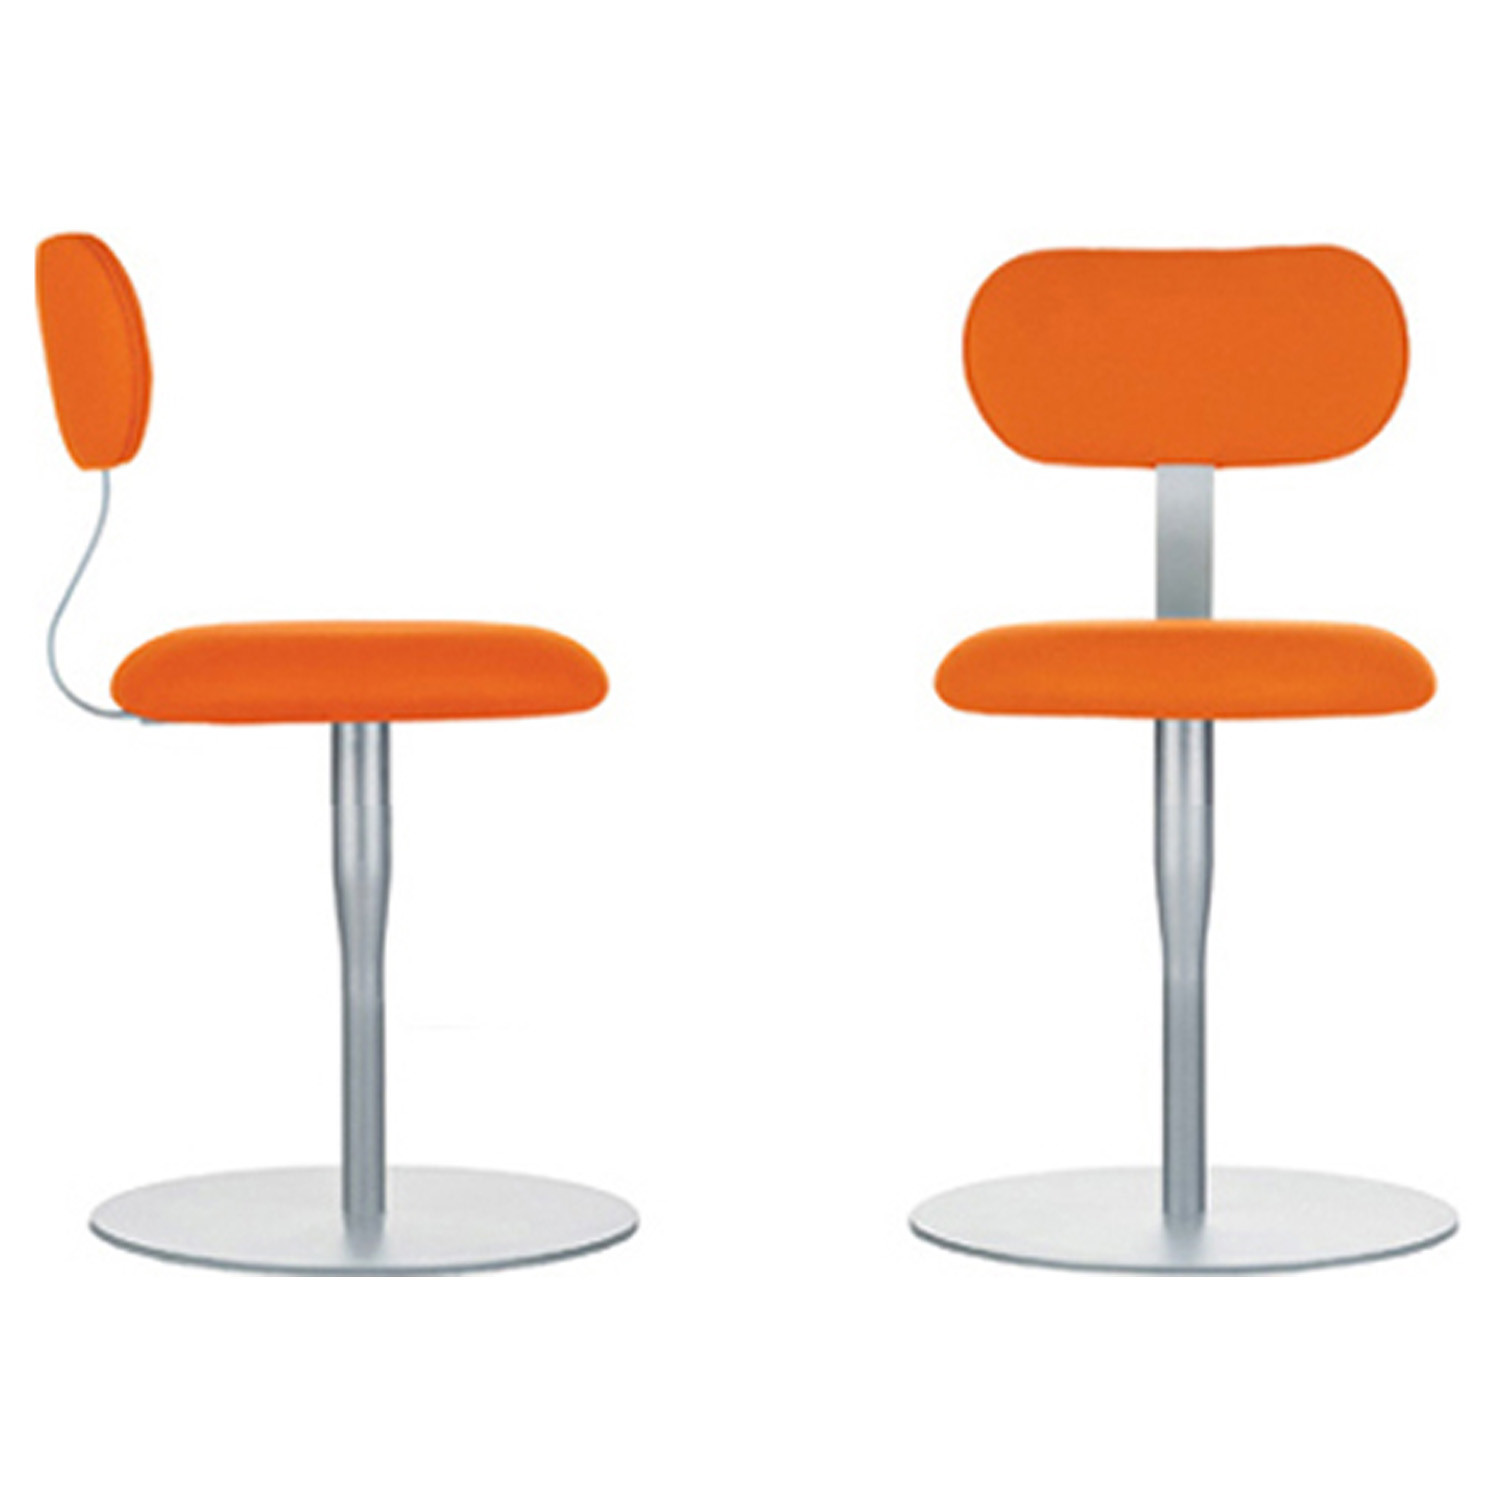 Atlas Chairs 753 - round base